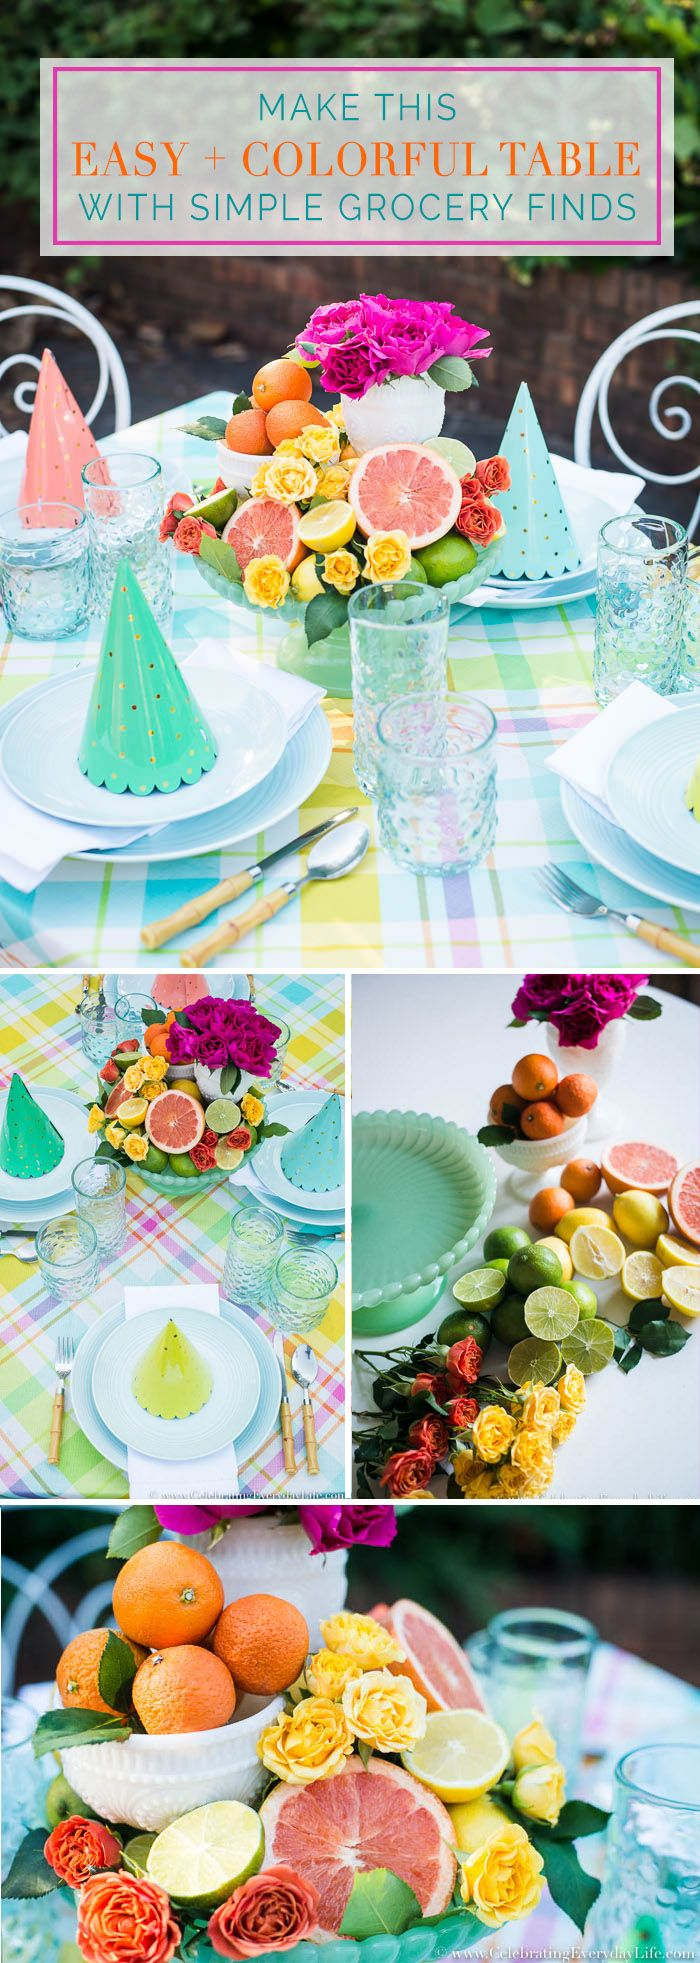 How to Make an Easy + Colorful Table with Simple G…